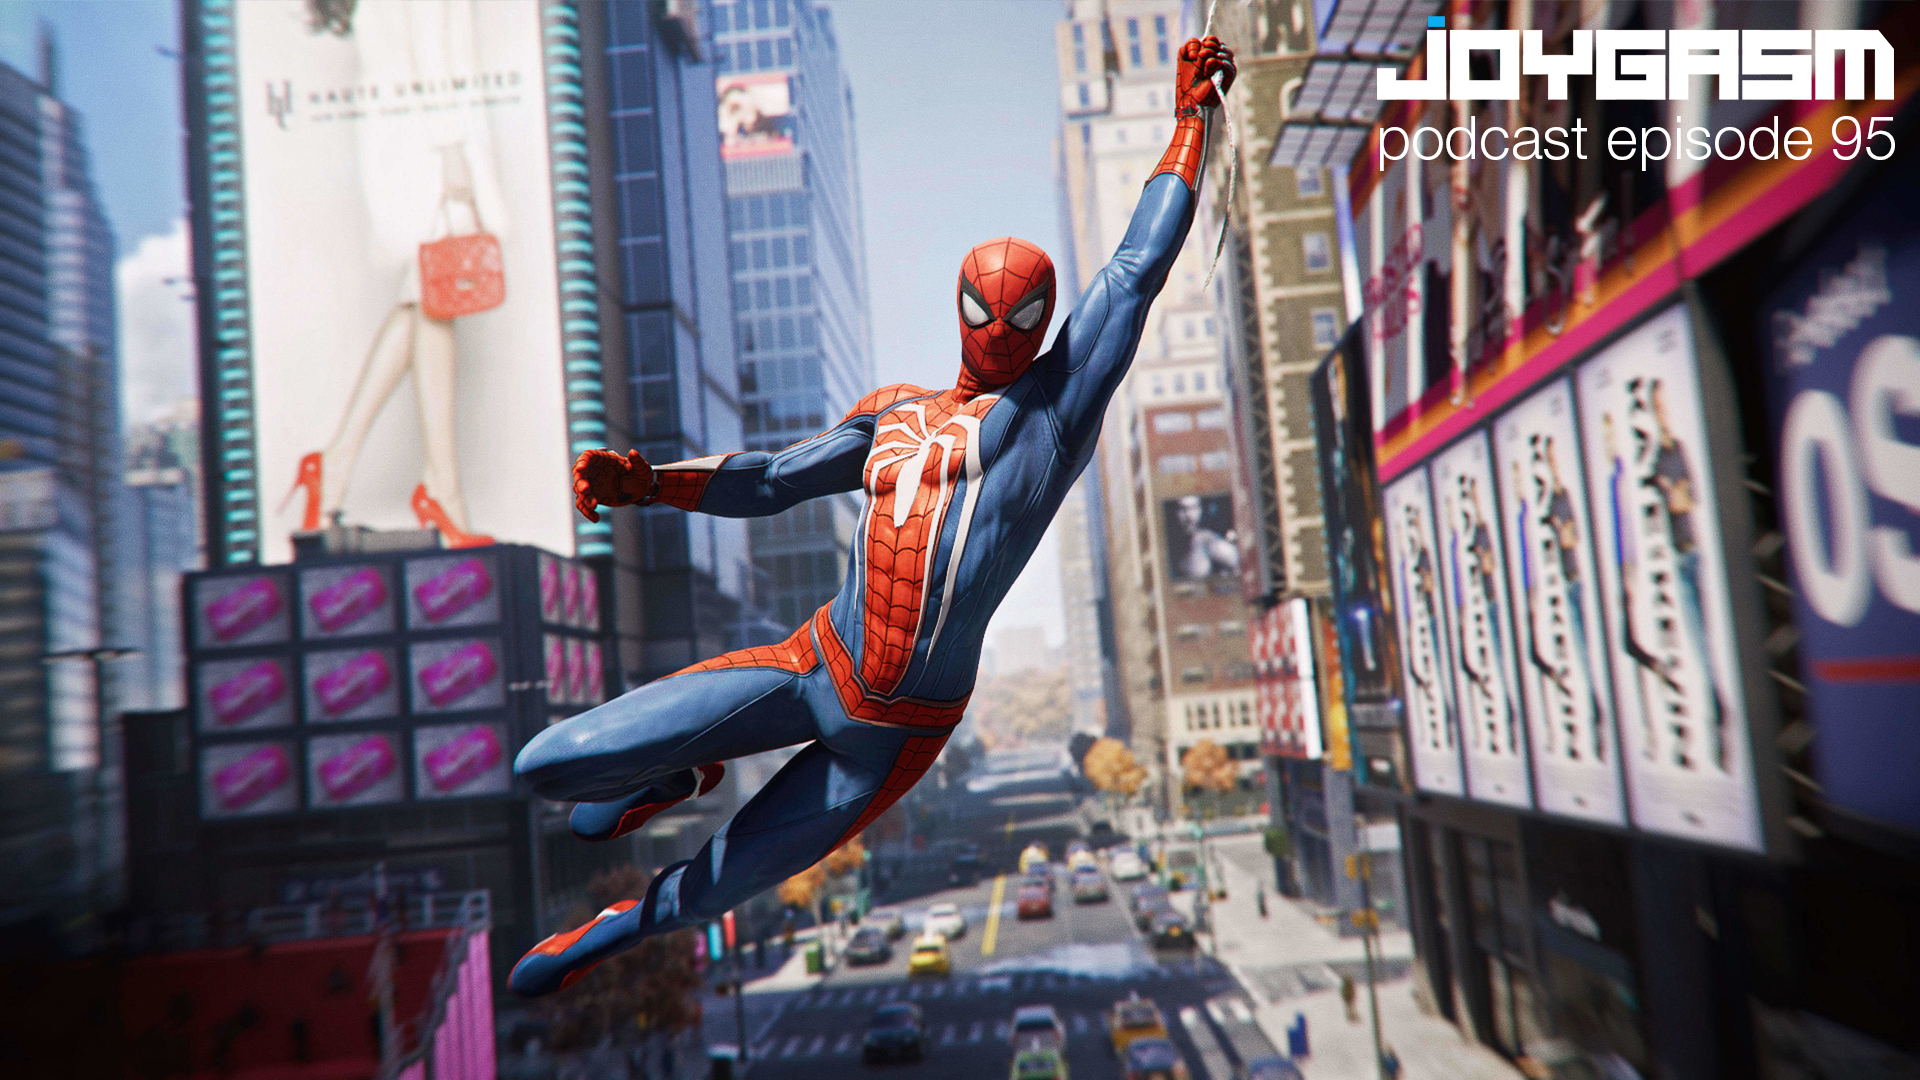 Ep. 95: Special Guest Nick from the Bombarded Podcast talks Spider-Man for PS4 (Spoilers!)